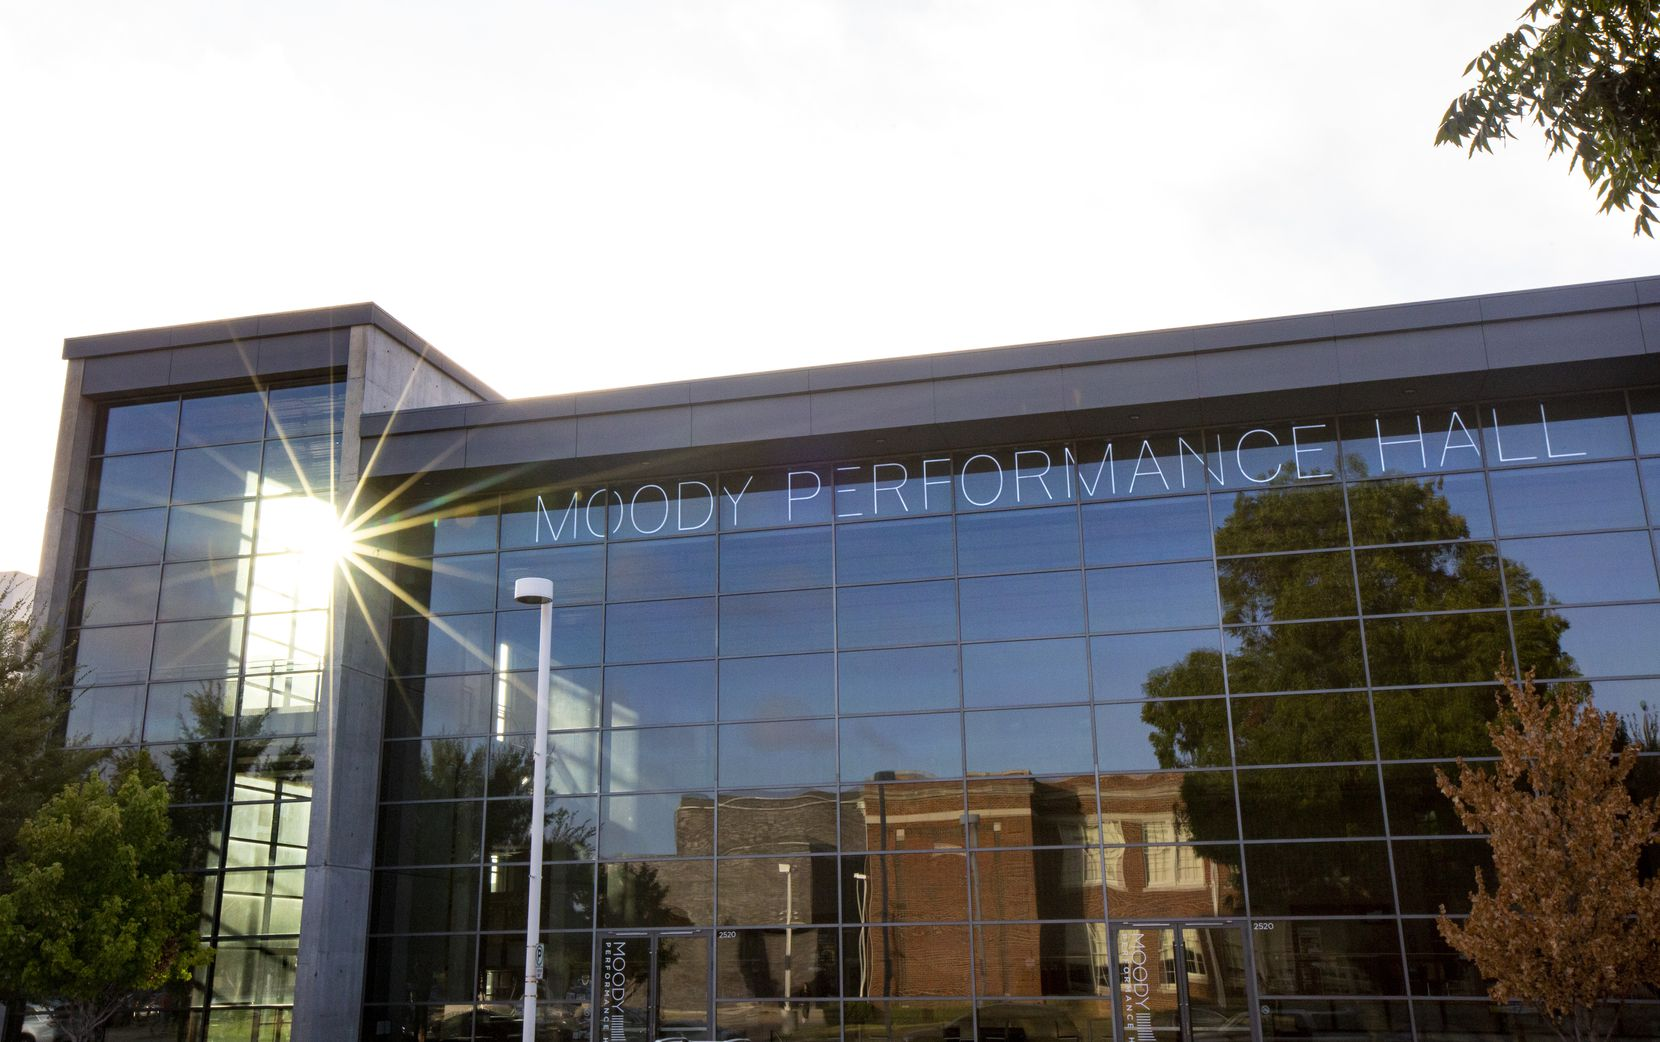 Moody Performance Hall is photographed in the Arts District of downtown Dallas on Wednesday, Oct. 2, 2019. The AT&T Performing Arts Center is celebrating its 10th anniversary on October 12, 2019. (Lynda M. Gonzalez/The Dallas Morning News)